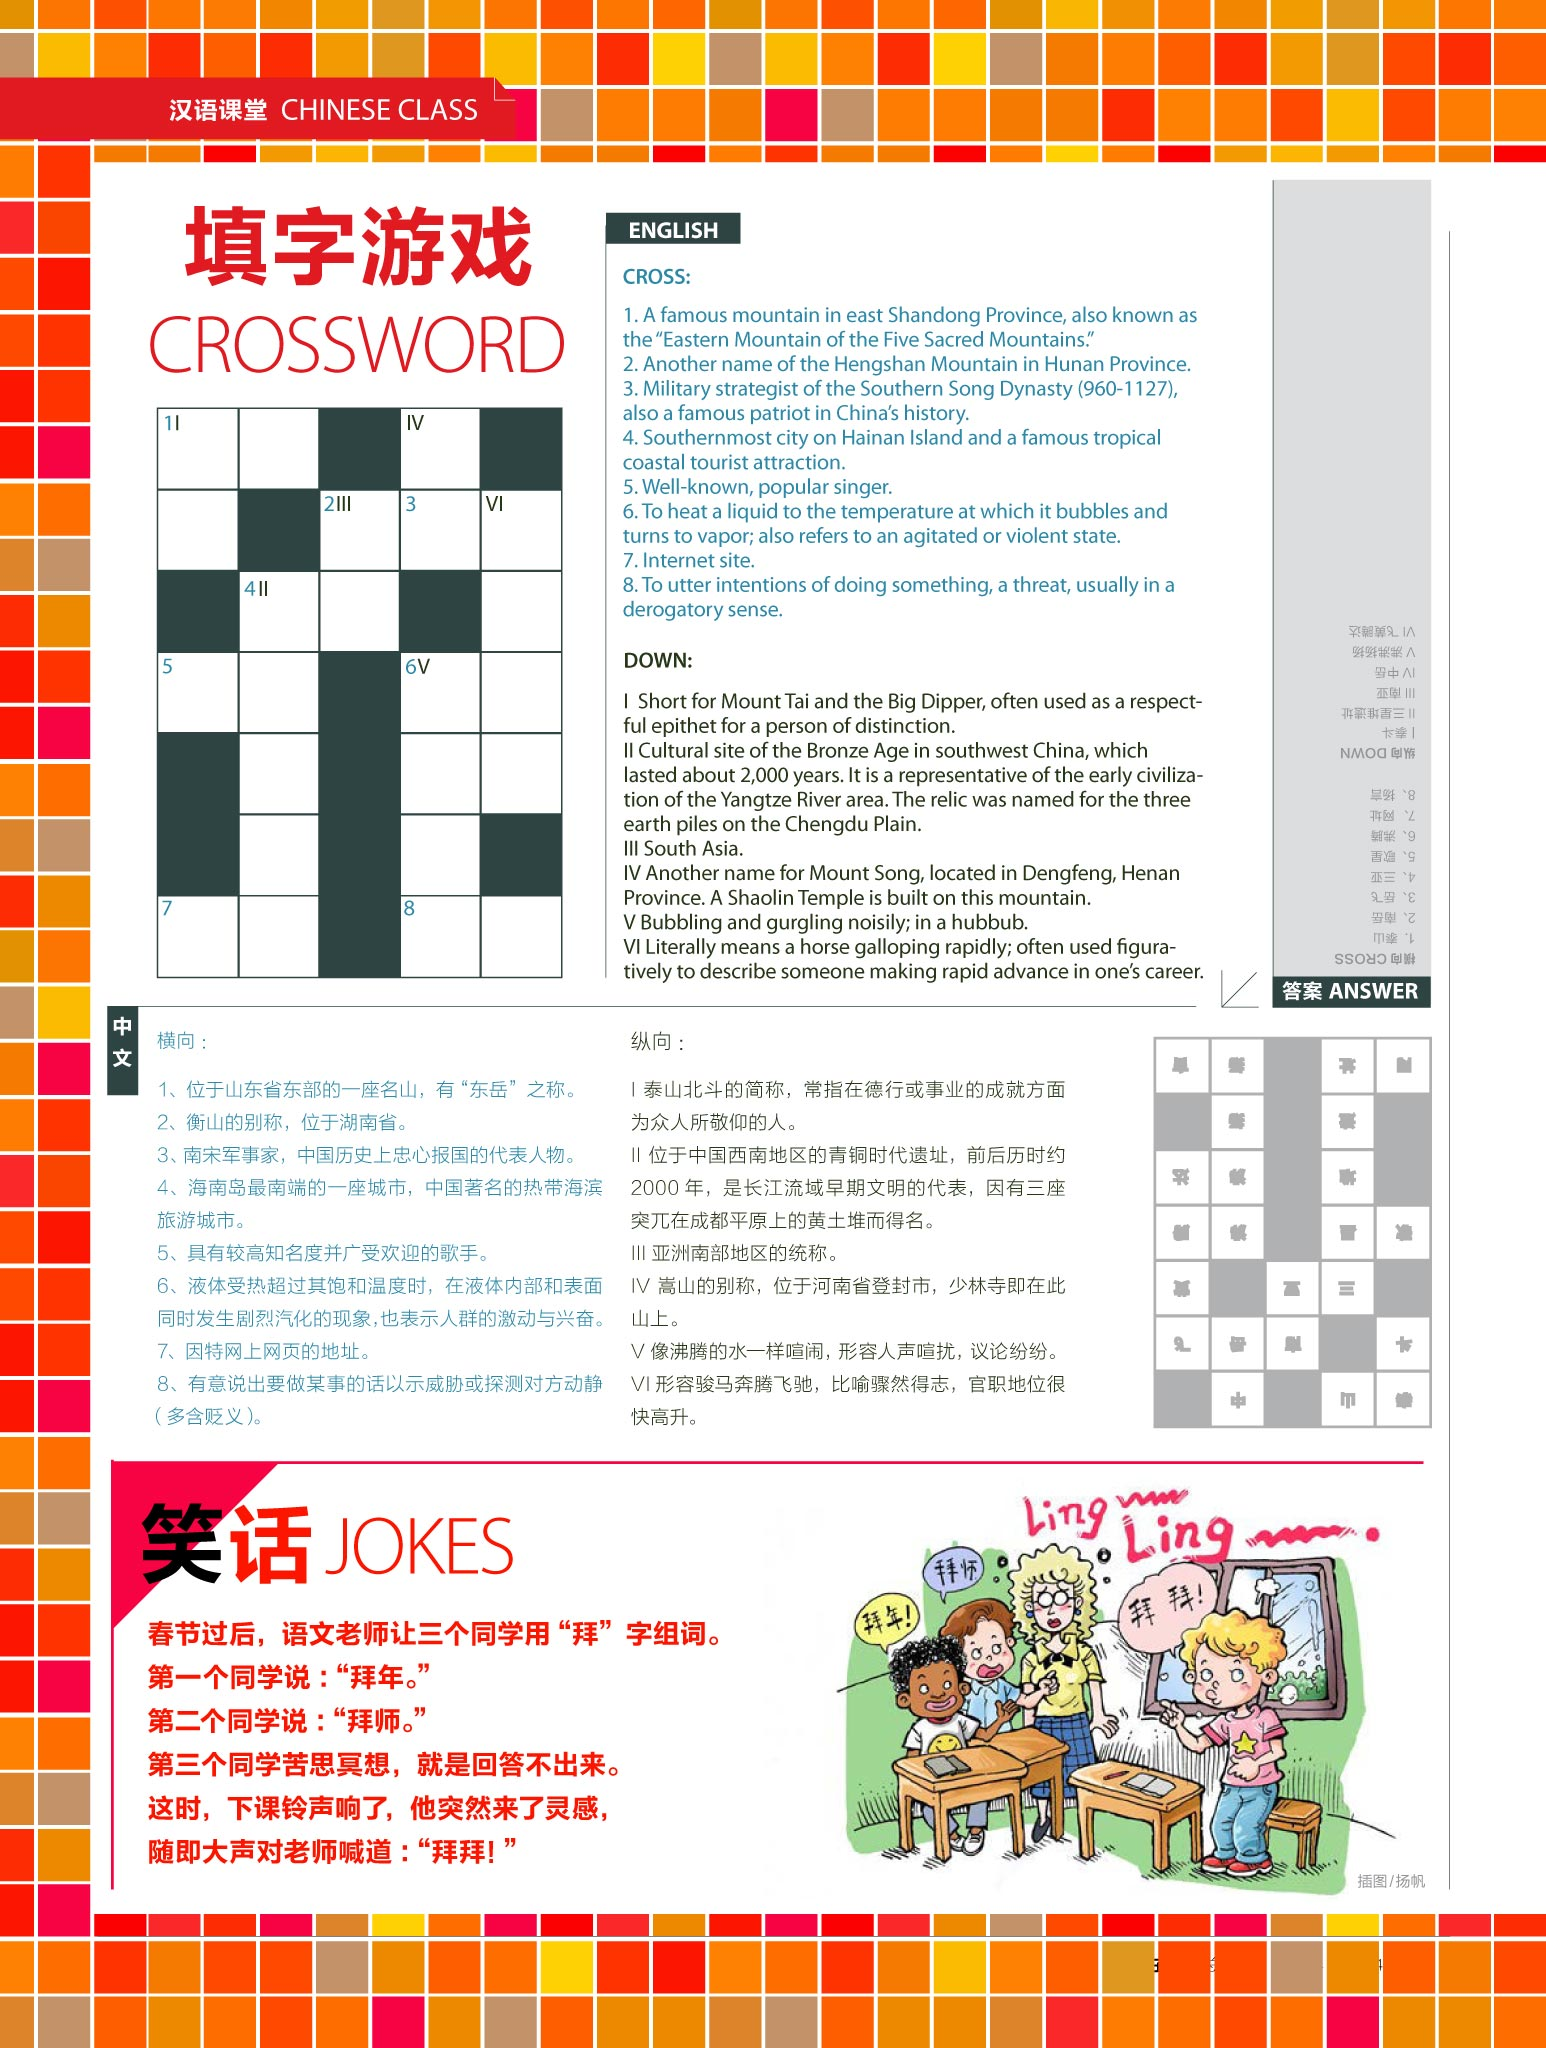 Chinese Class 13 Crossword Fun Idioms